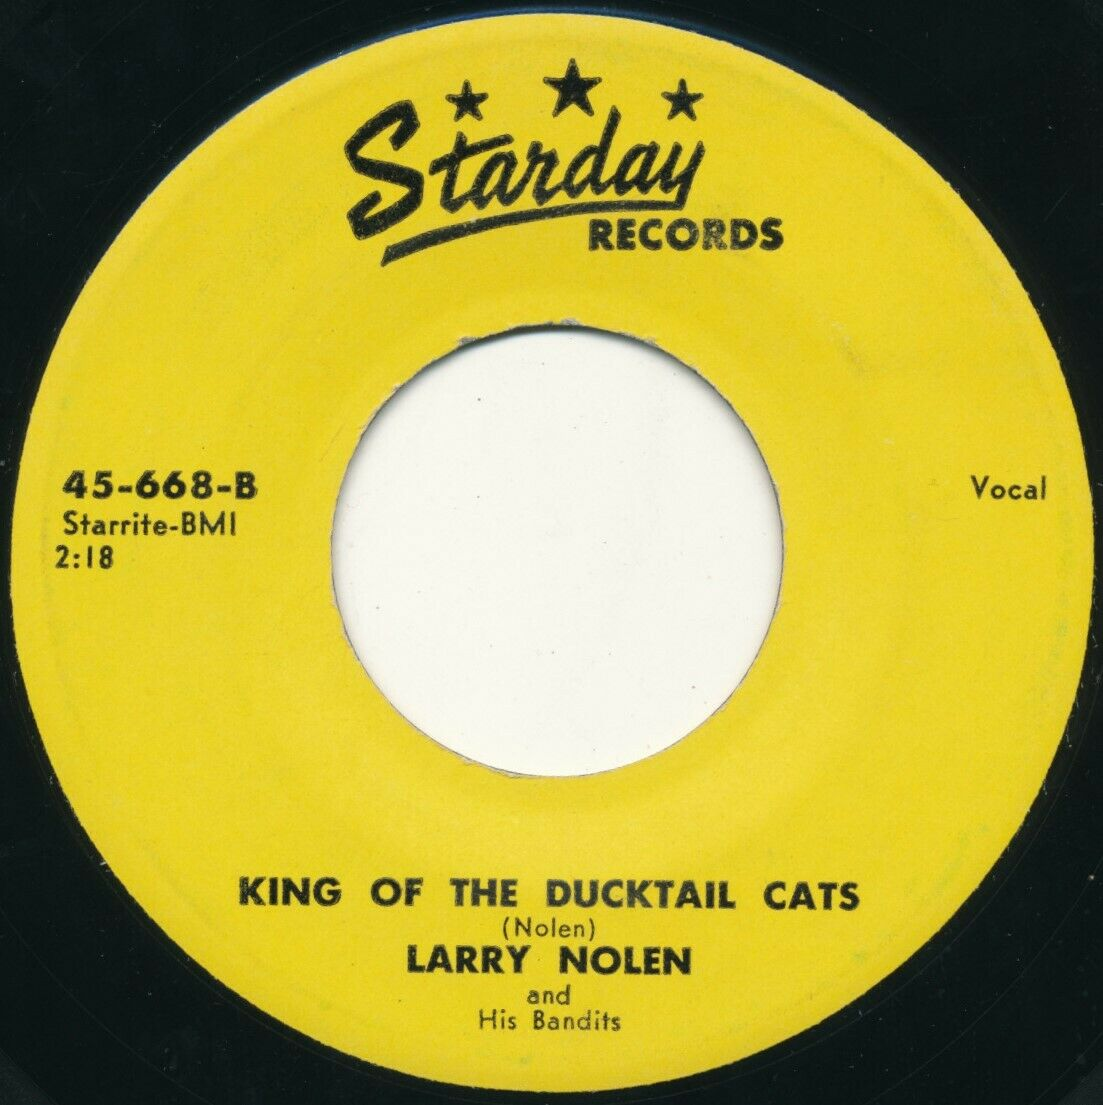 LARRY NOLEN & BANDITS It's King Of The Ducktail Cats 45 Starday Rockabilly Texas